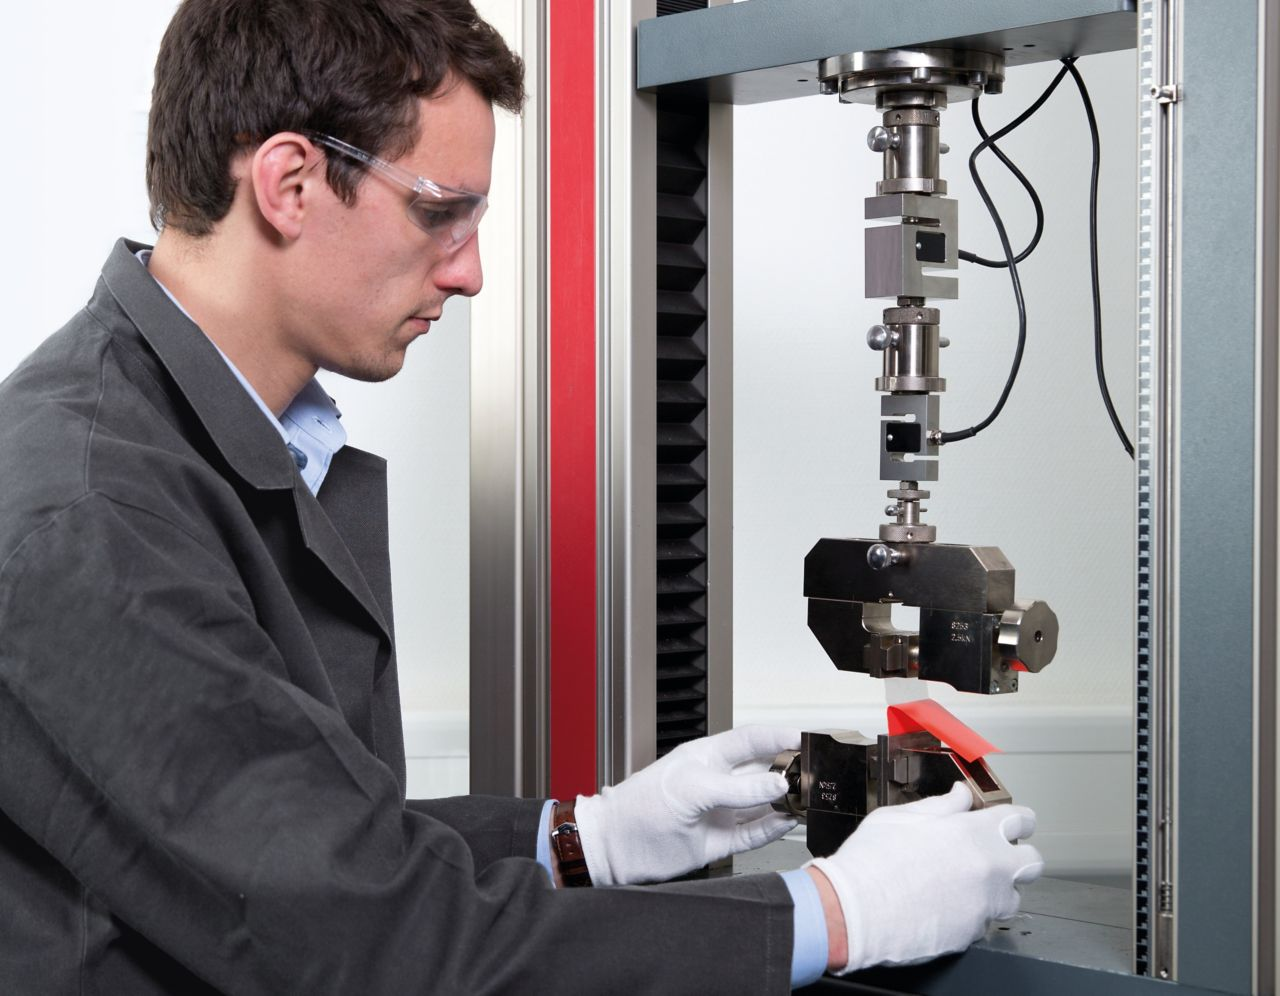 A man performing a tensile strength test on a zwick machine